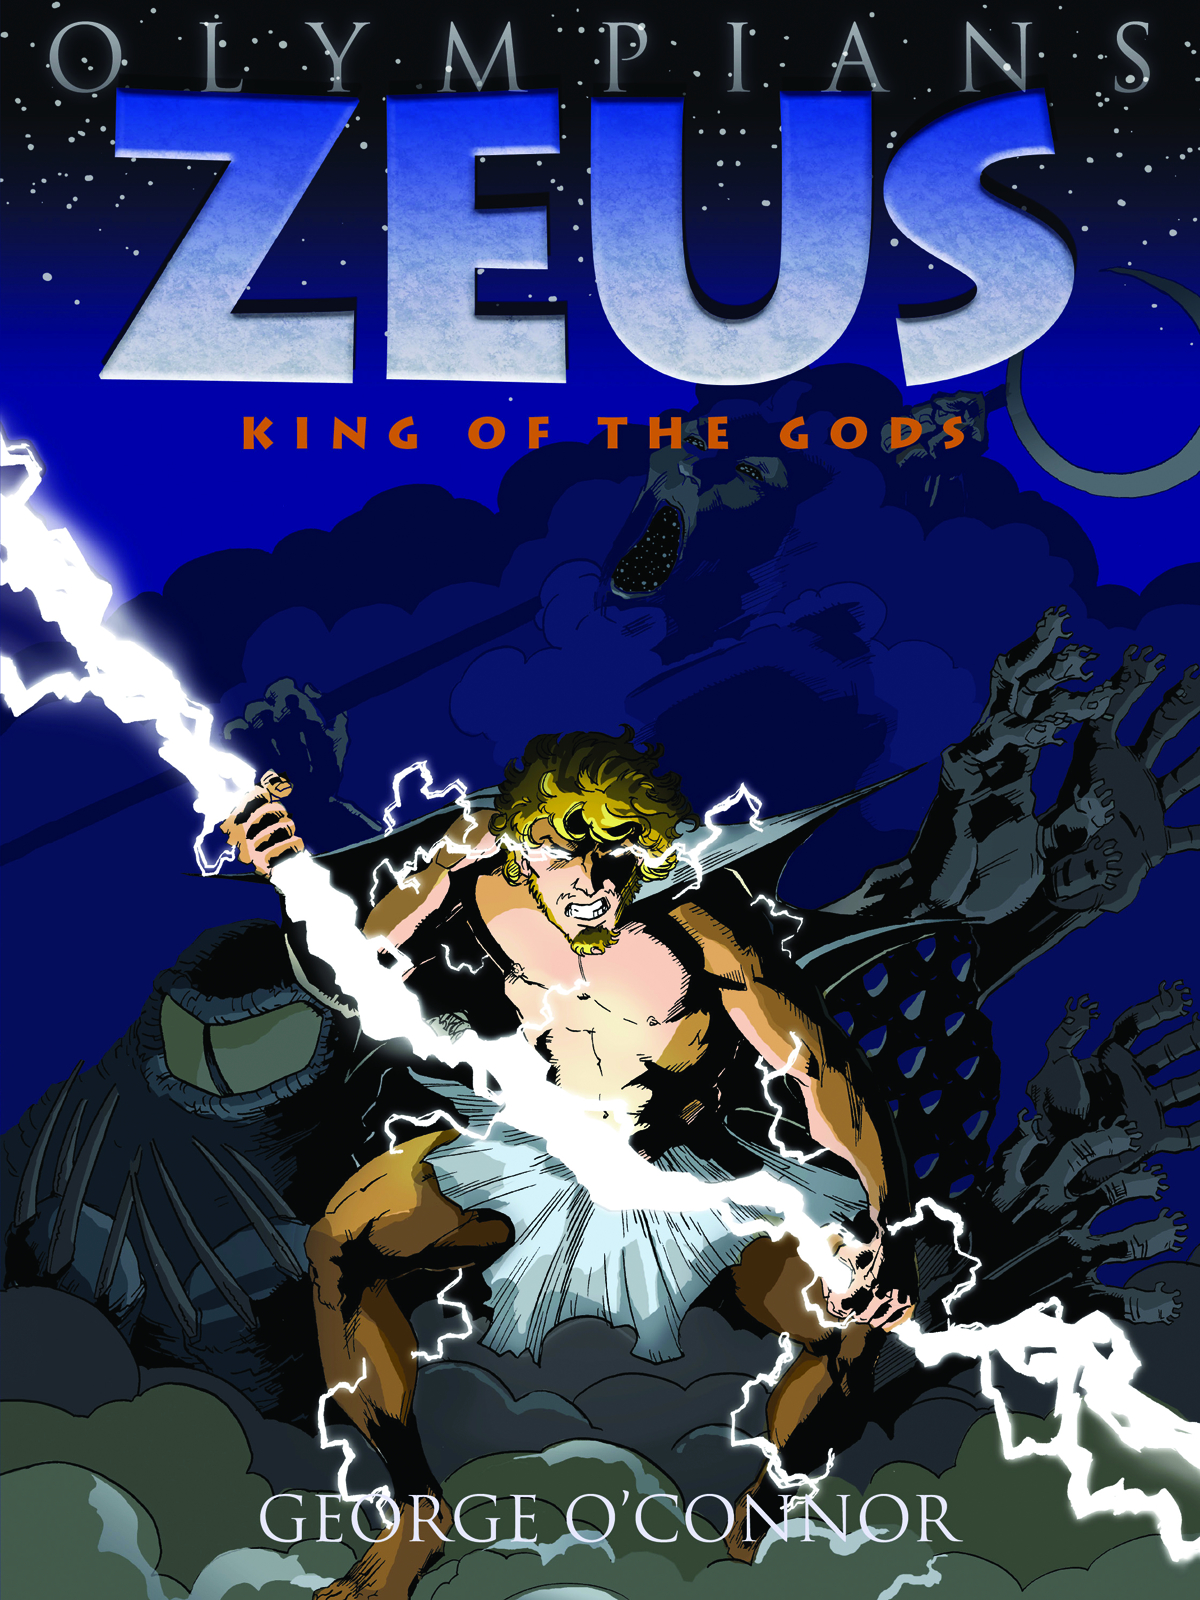 OLYMPIANS GN VOL 01 ZEUS KING OF THE GODS